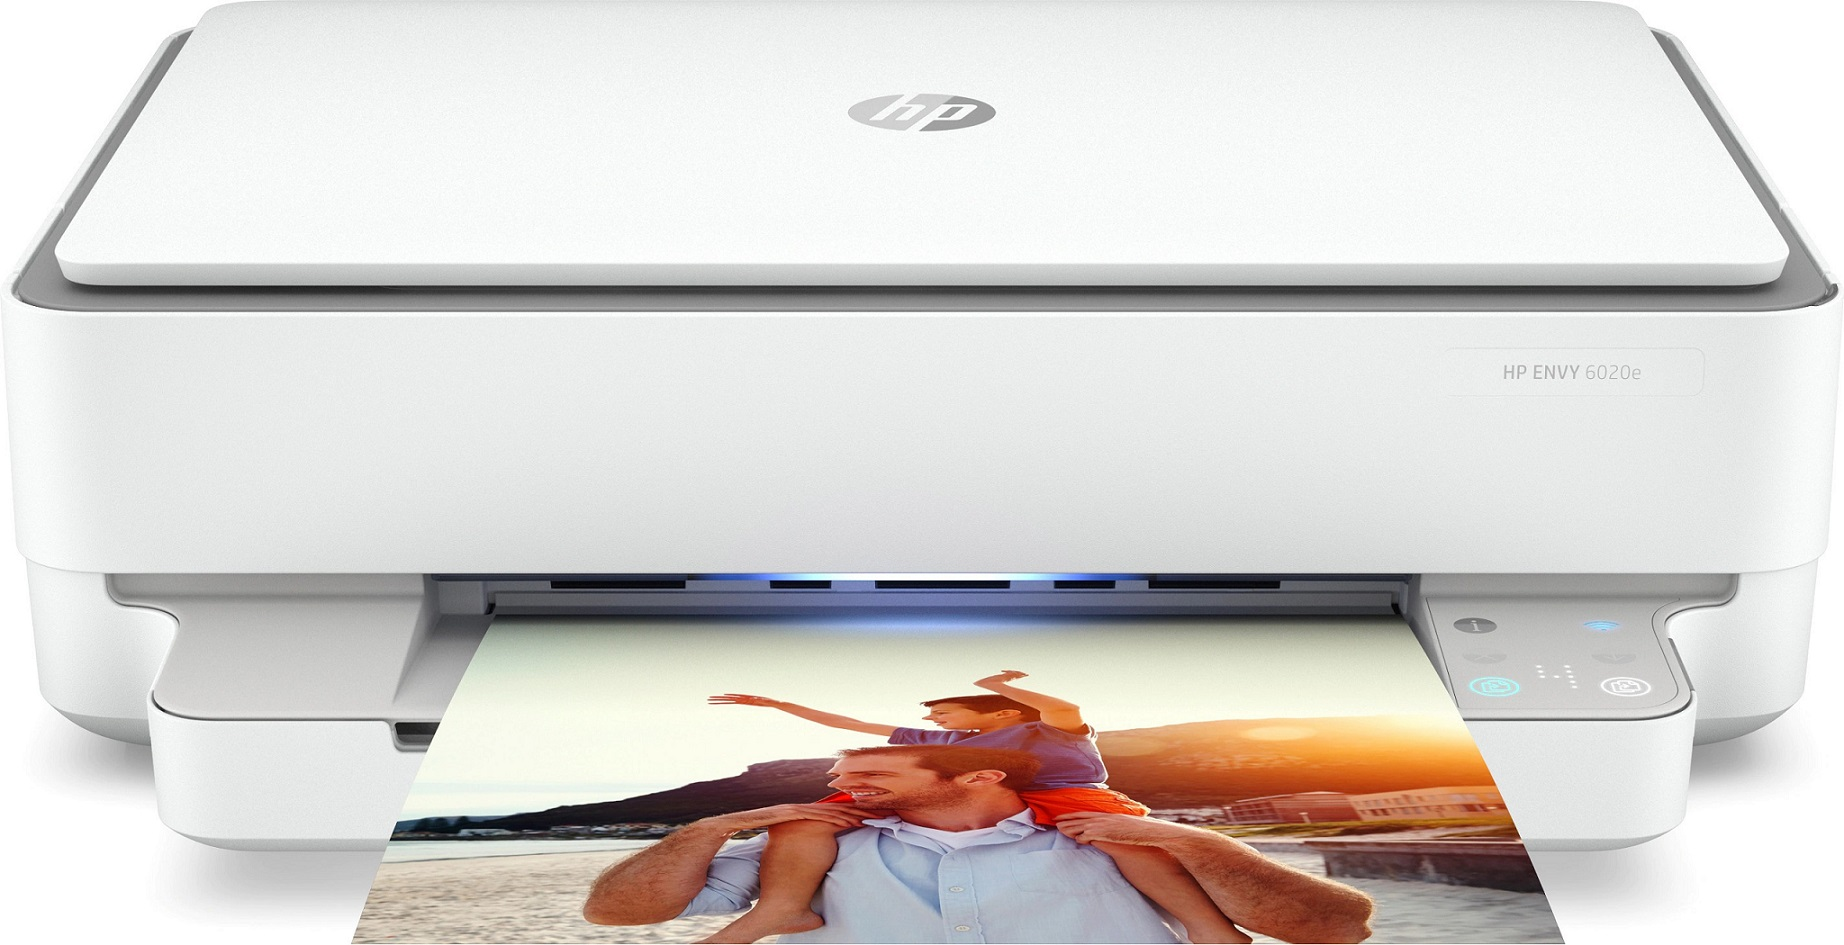 HP ENVY 6020E All-in-One Printer - - HP Instant Ink ready